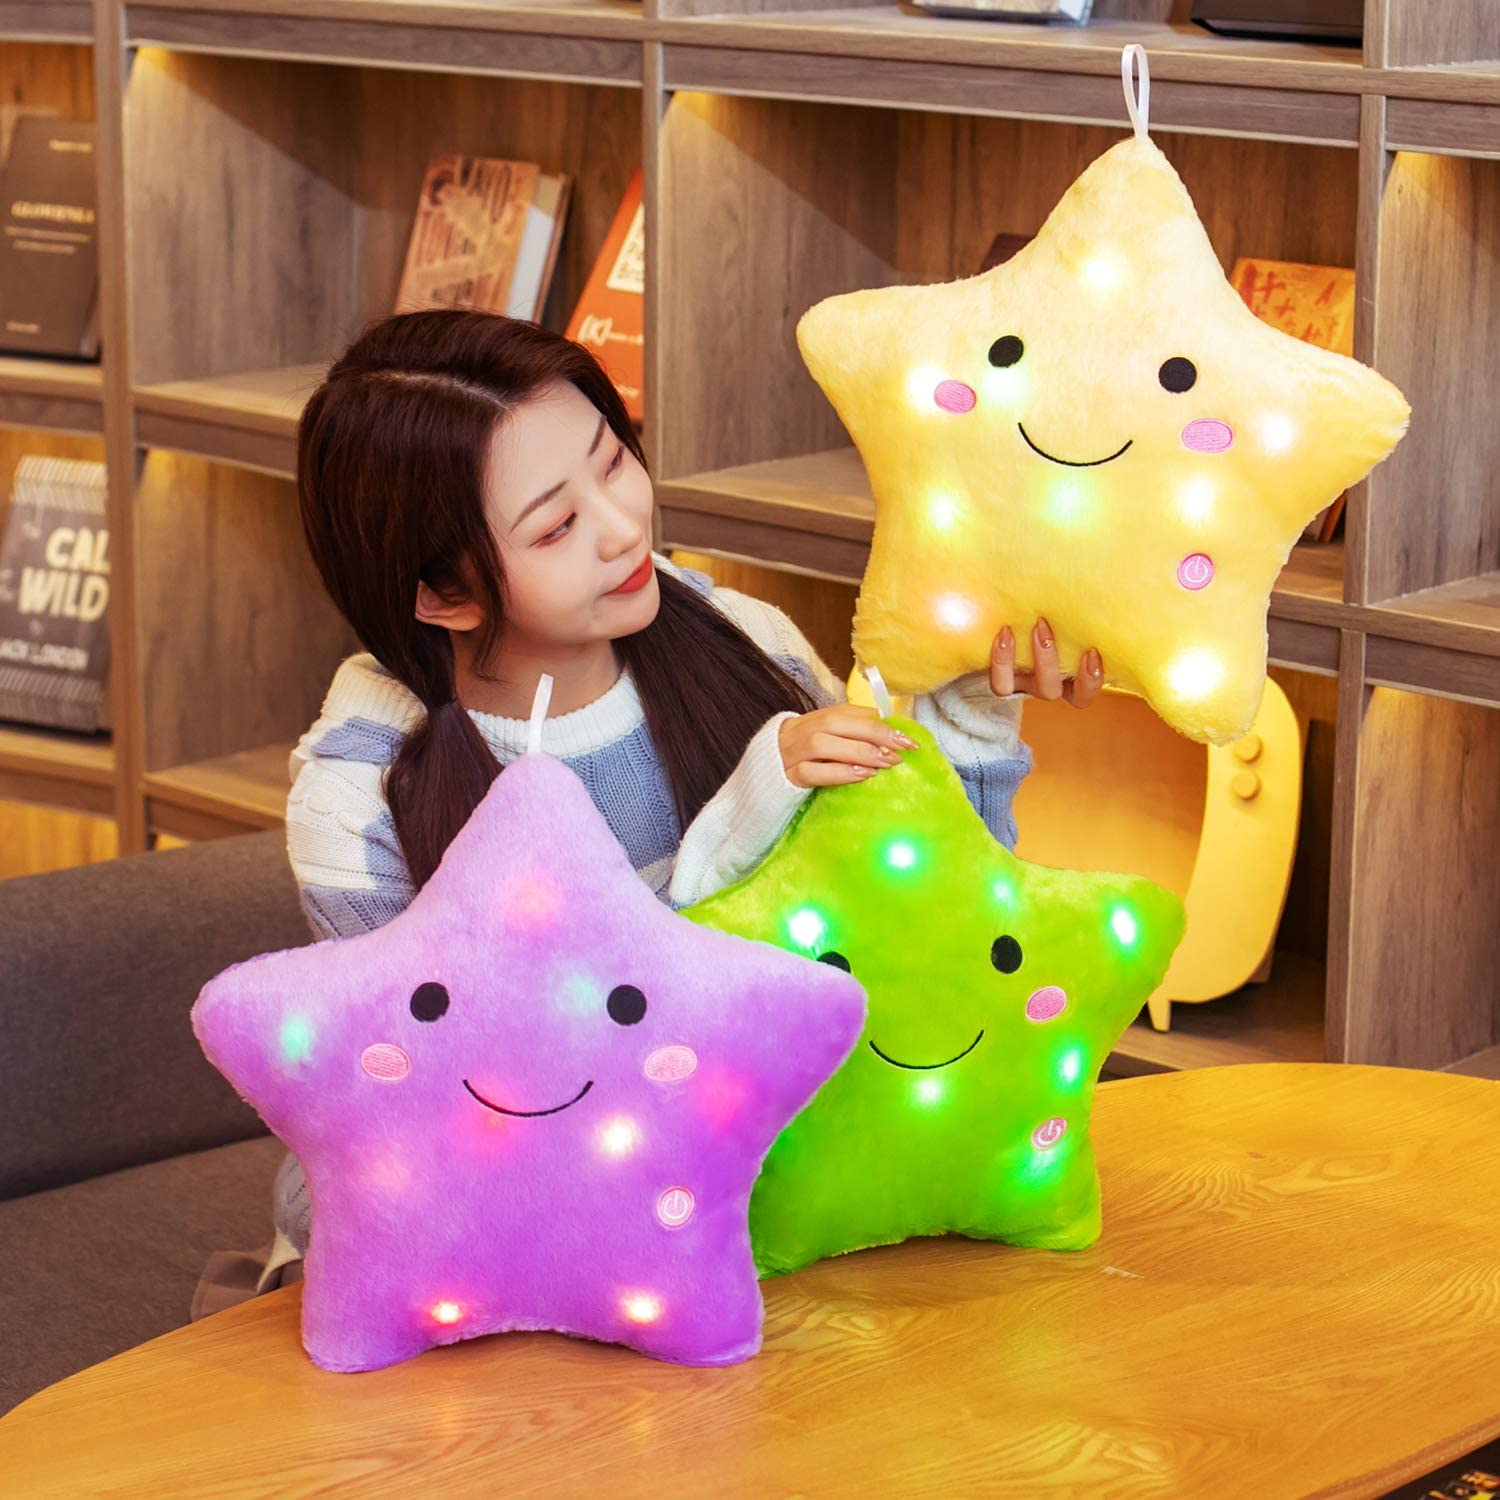 Buy Twinkle Star Plush Pillows Stuffed For Home Deco Purple Online In Vietnam B07cpsdcmd